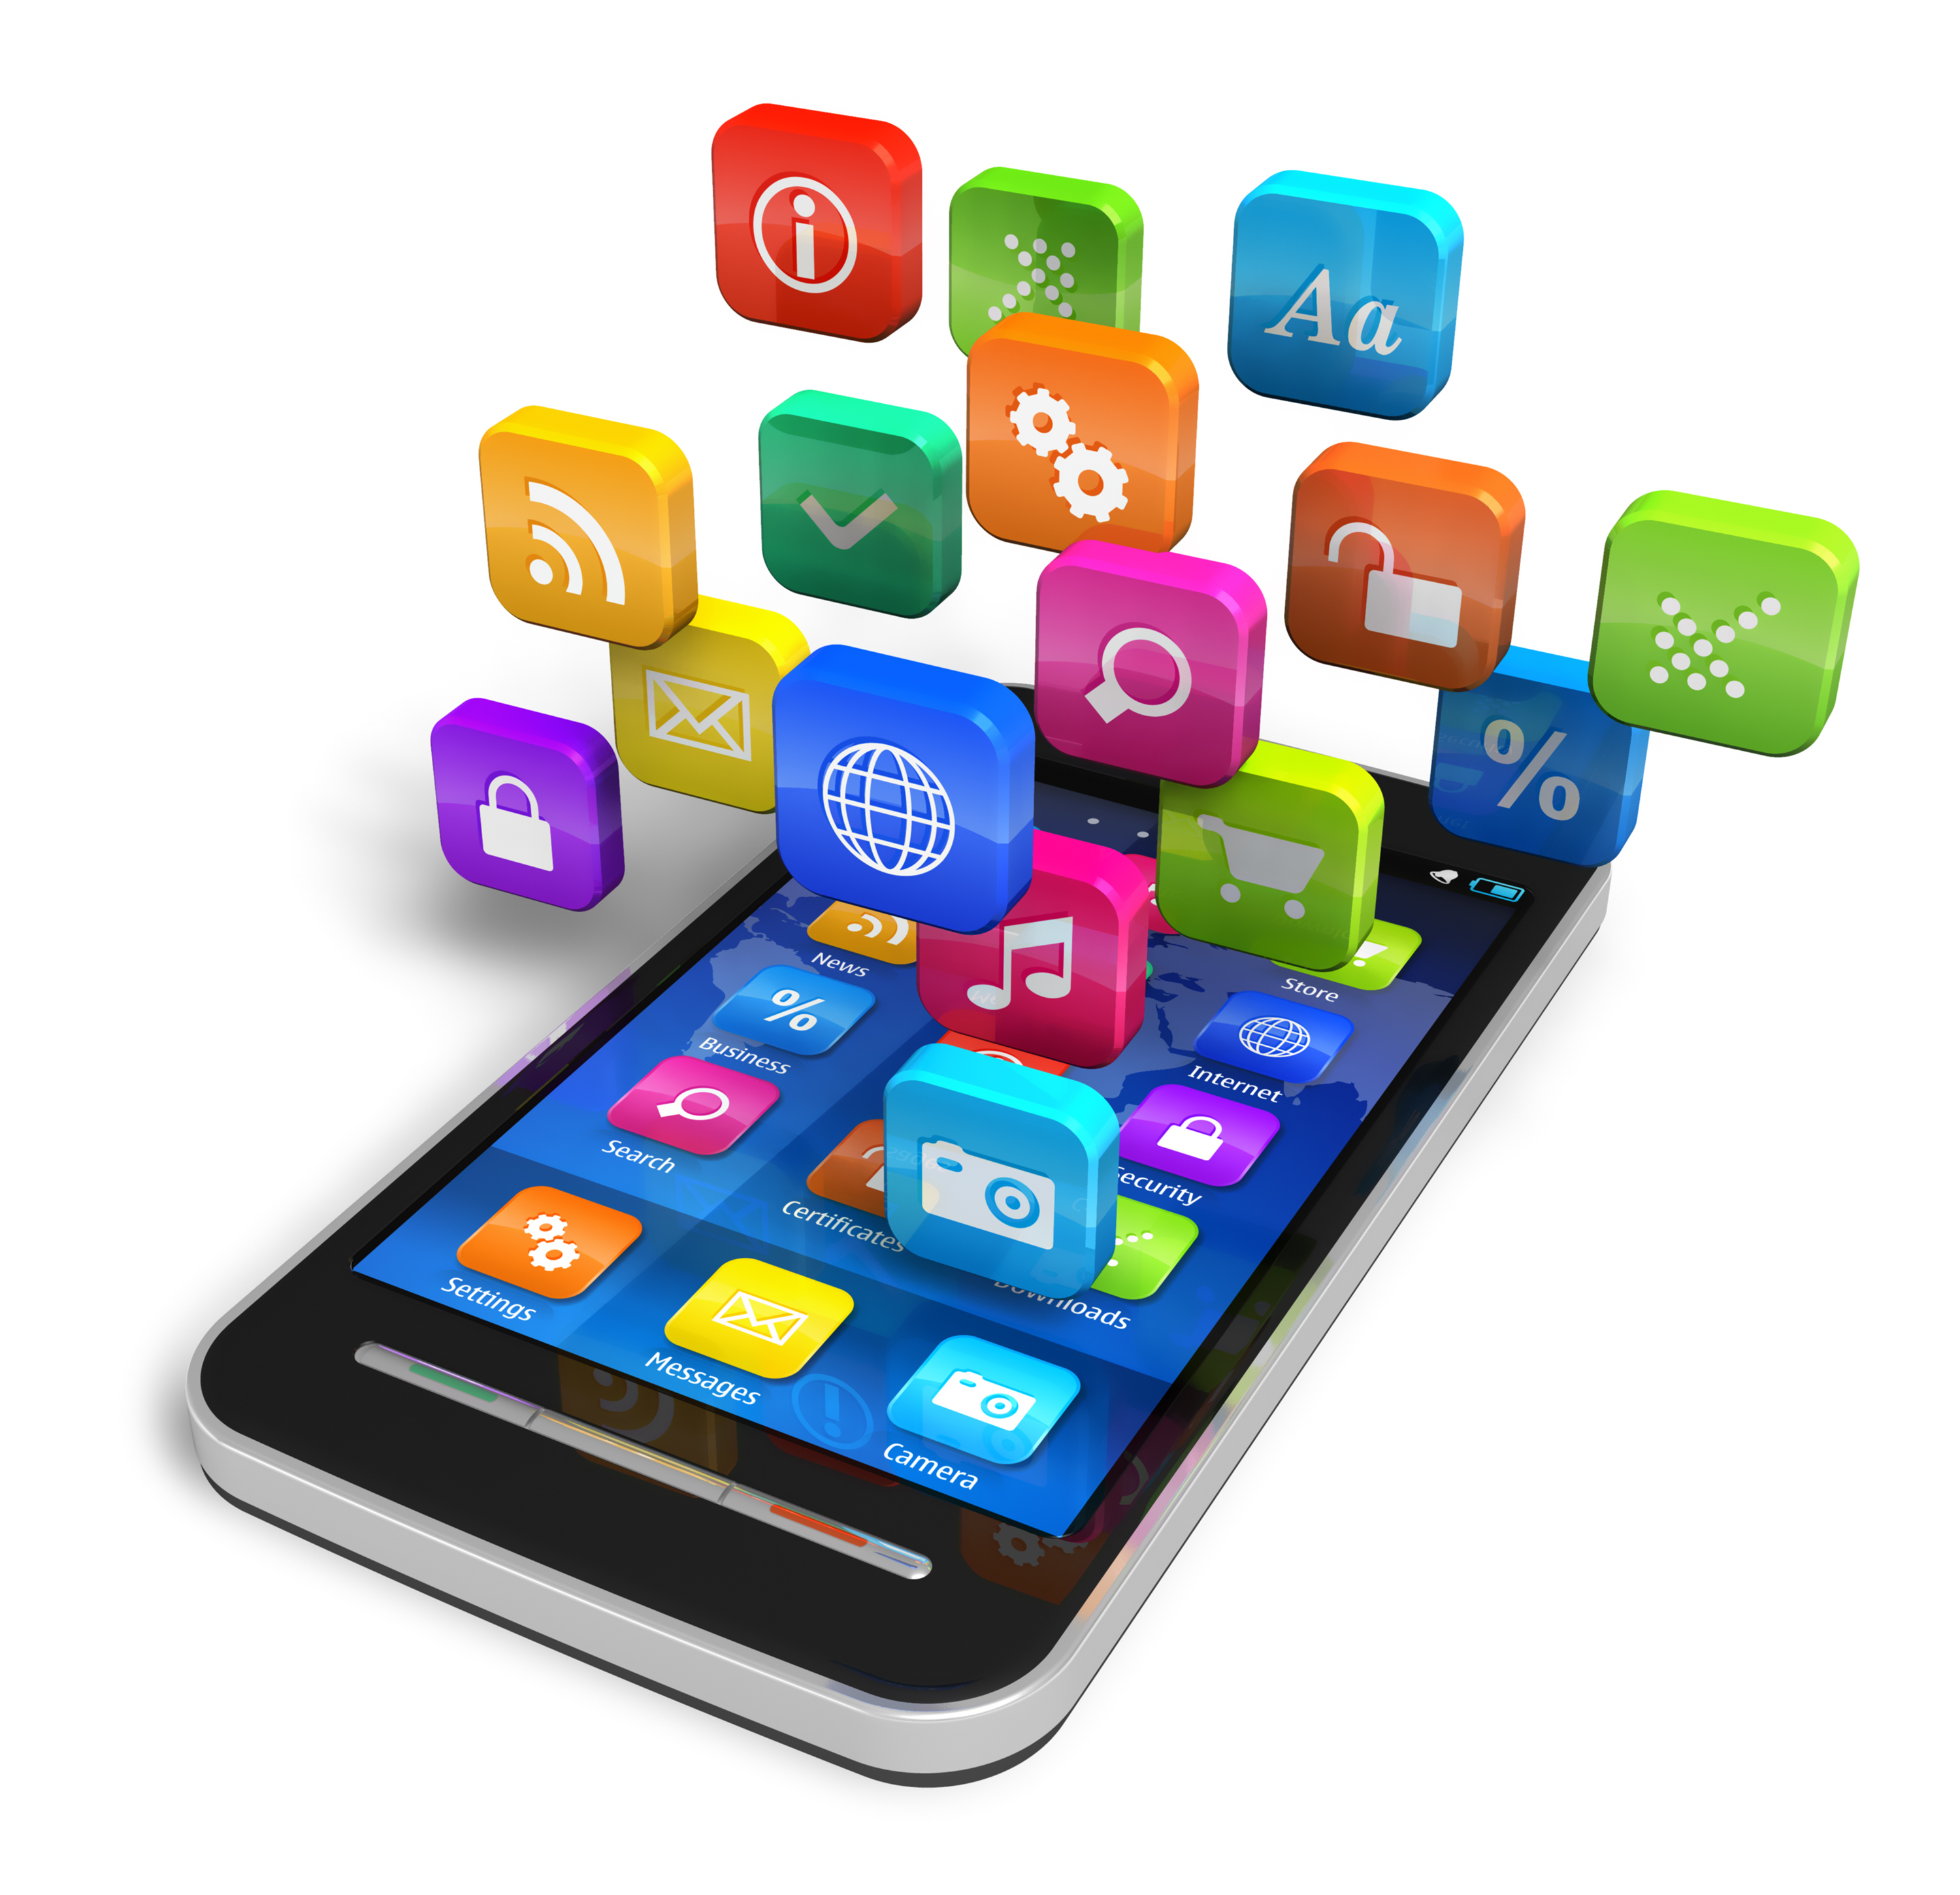 Transforming the business through mobile app data